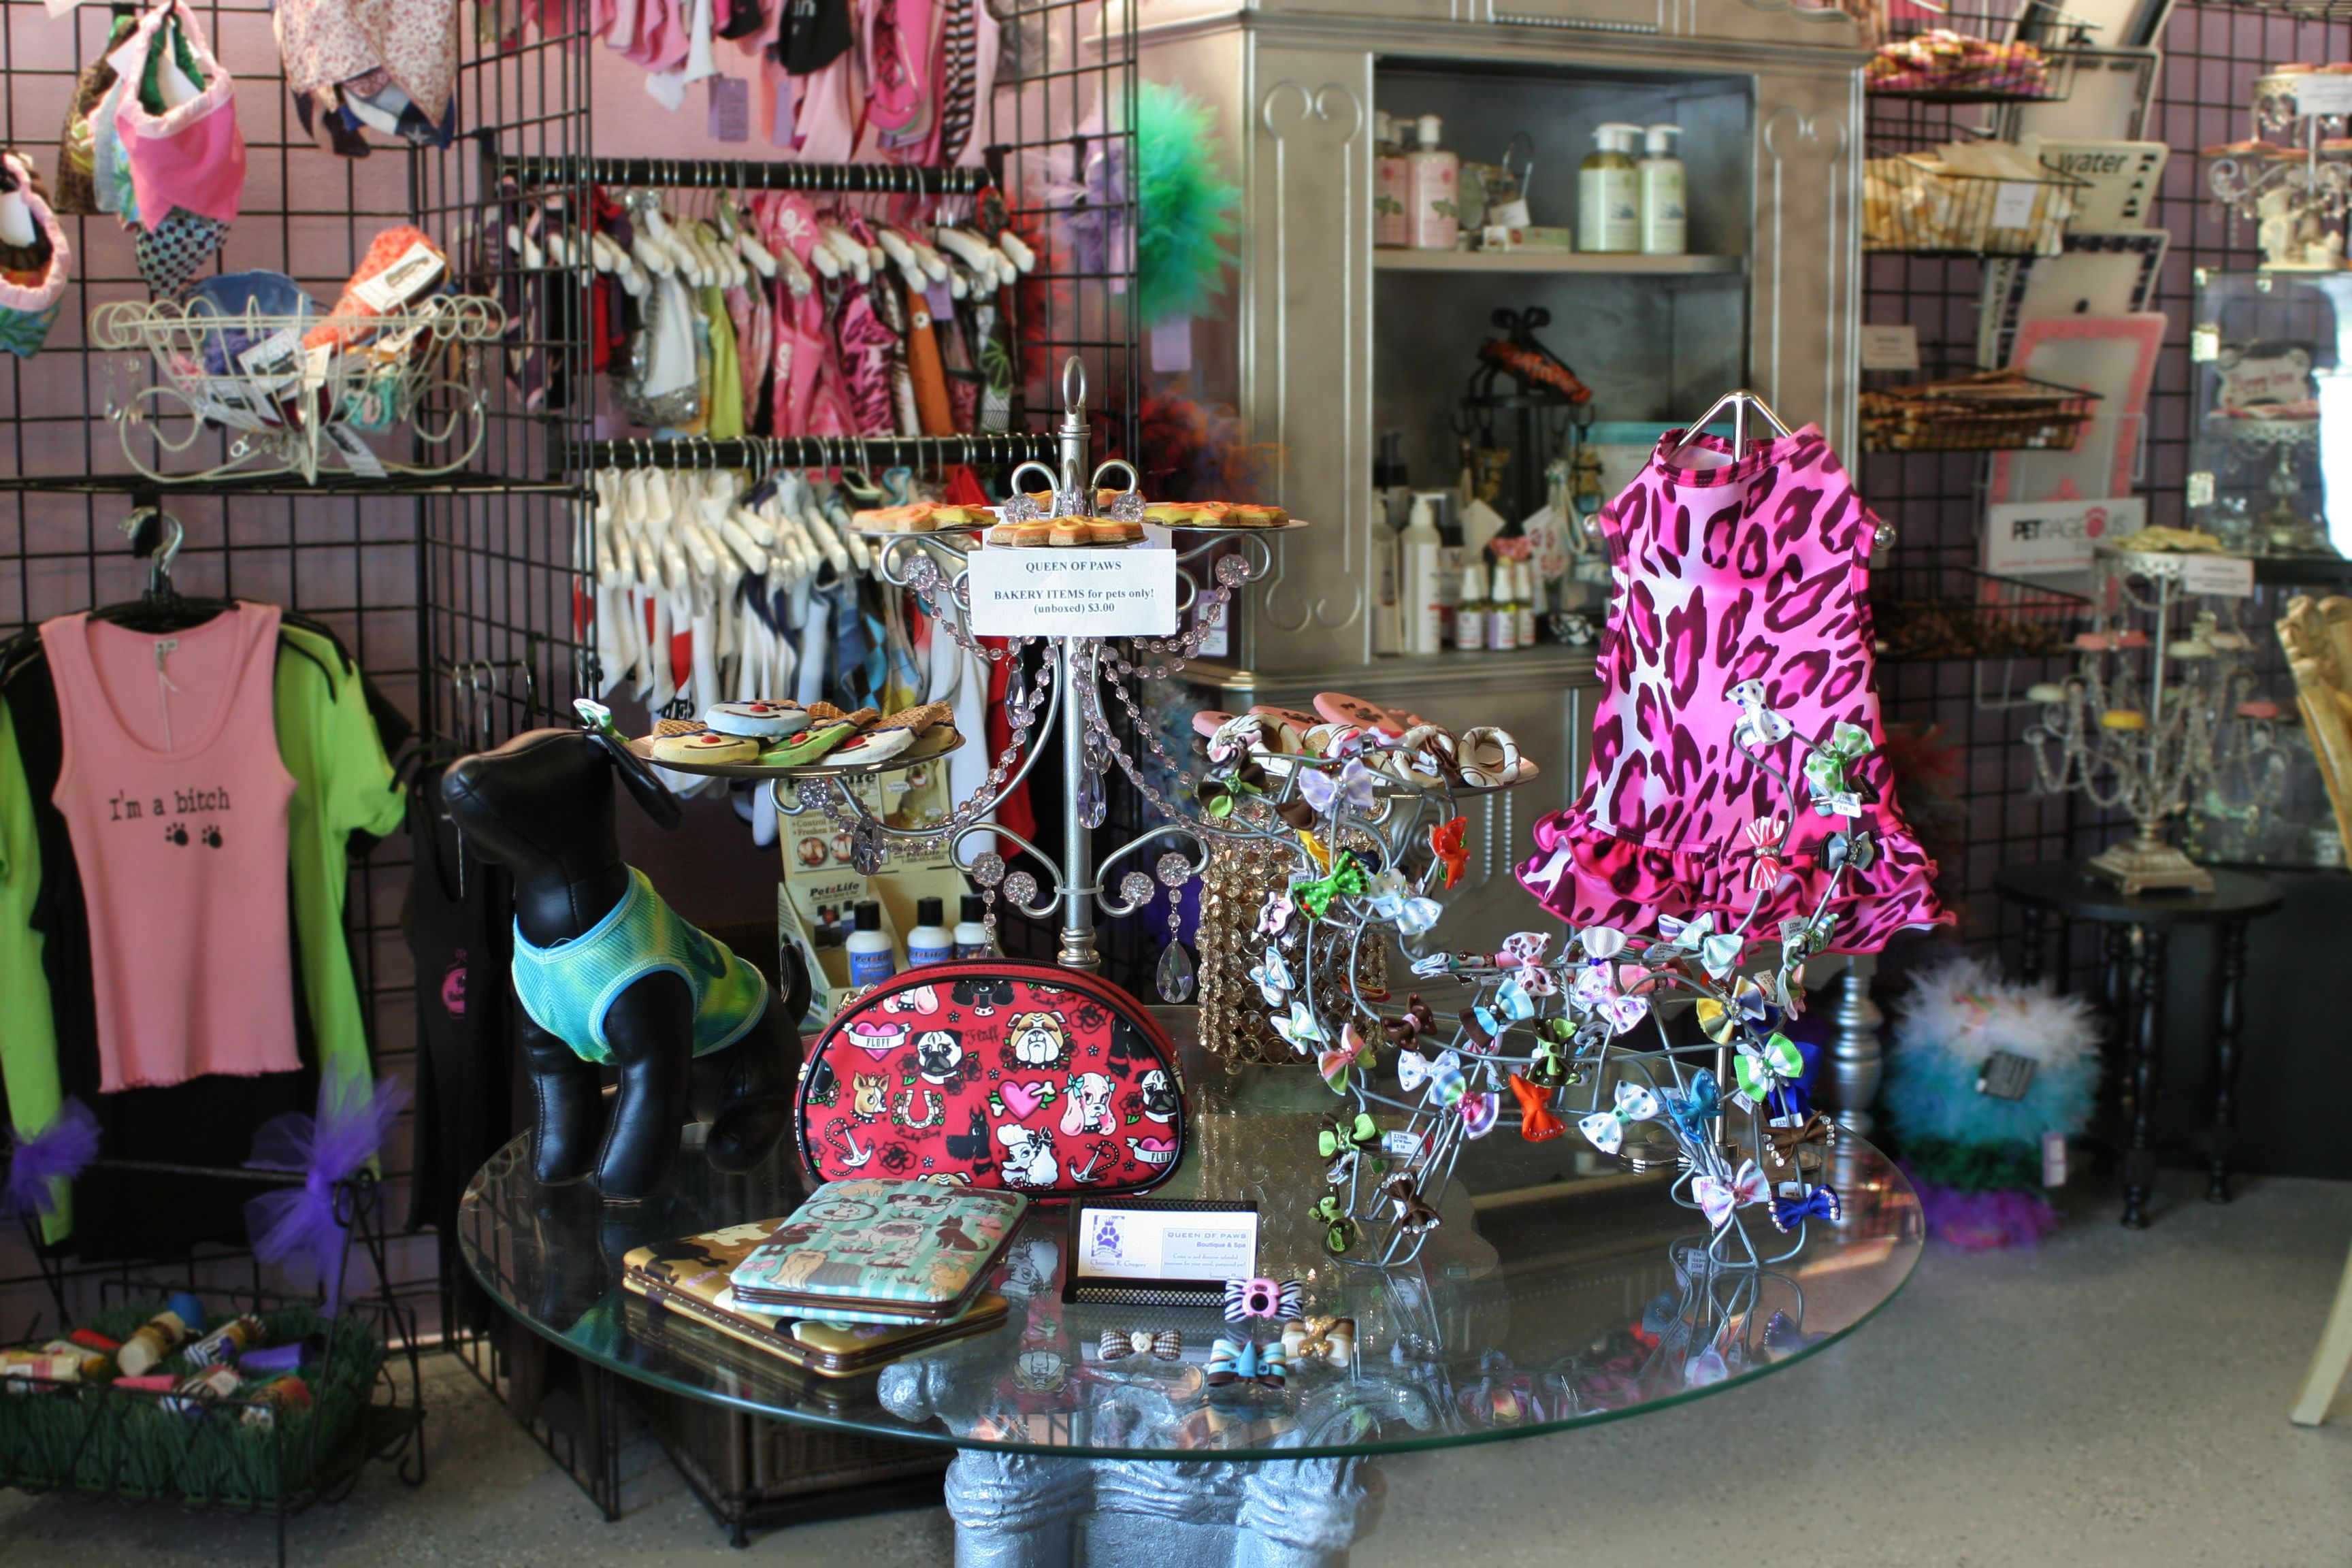 Come in & discover splendid treasures for you royal